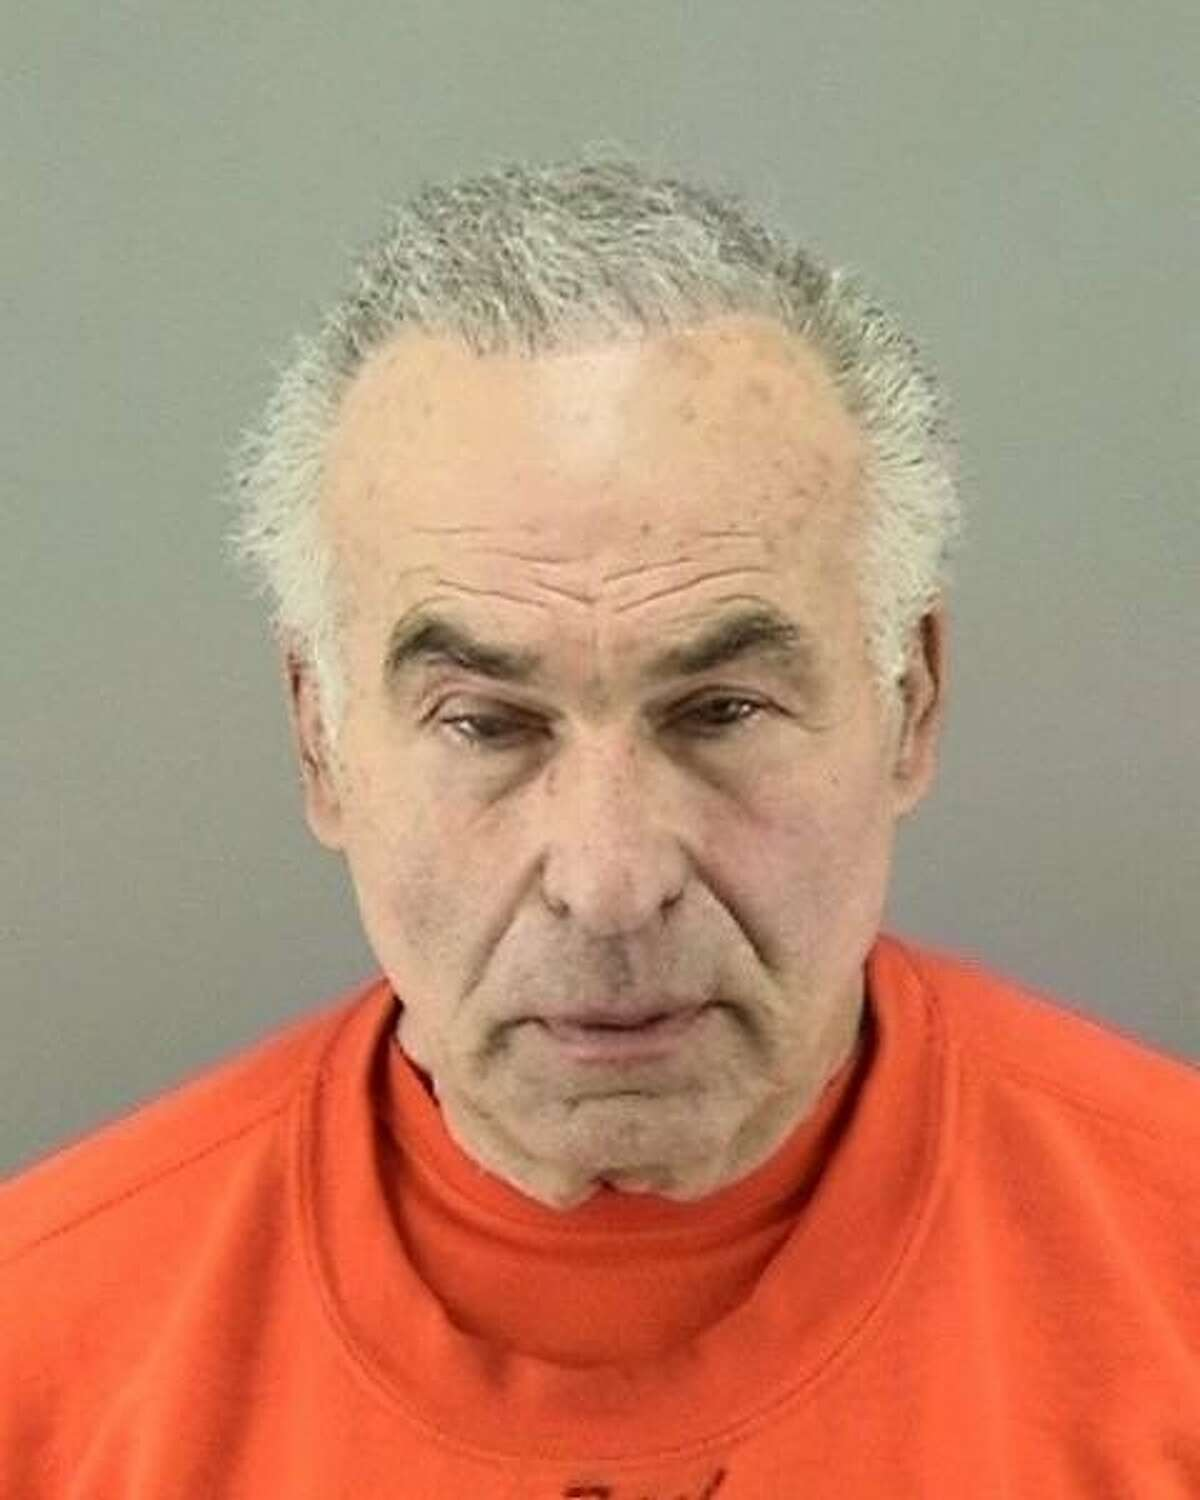 Giampaolo Boschetti, 69, of San Francisco, arrested for alleged vehicular manslaughter in connection with a crash Dec. 31, 2013, that killed an 86-year-old pedestrian, Zhen Guang Ng, at Rolph and Naples streets in San Francisco.